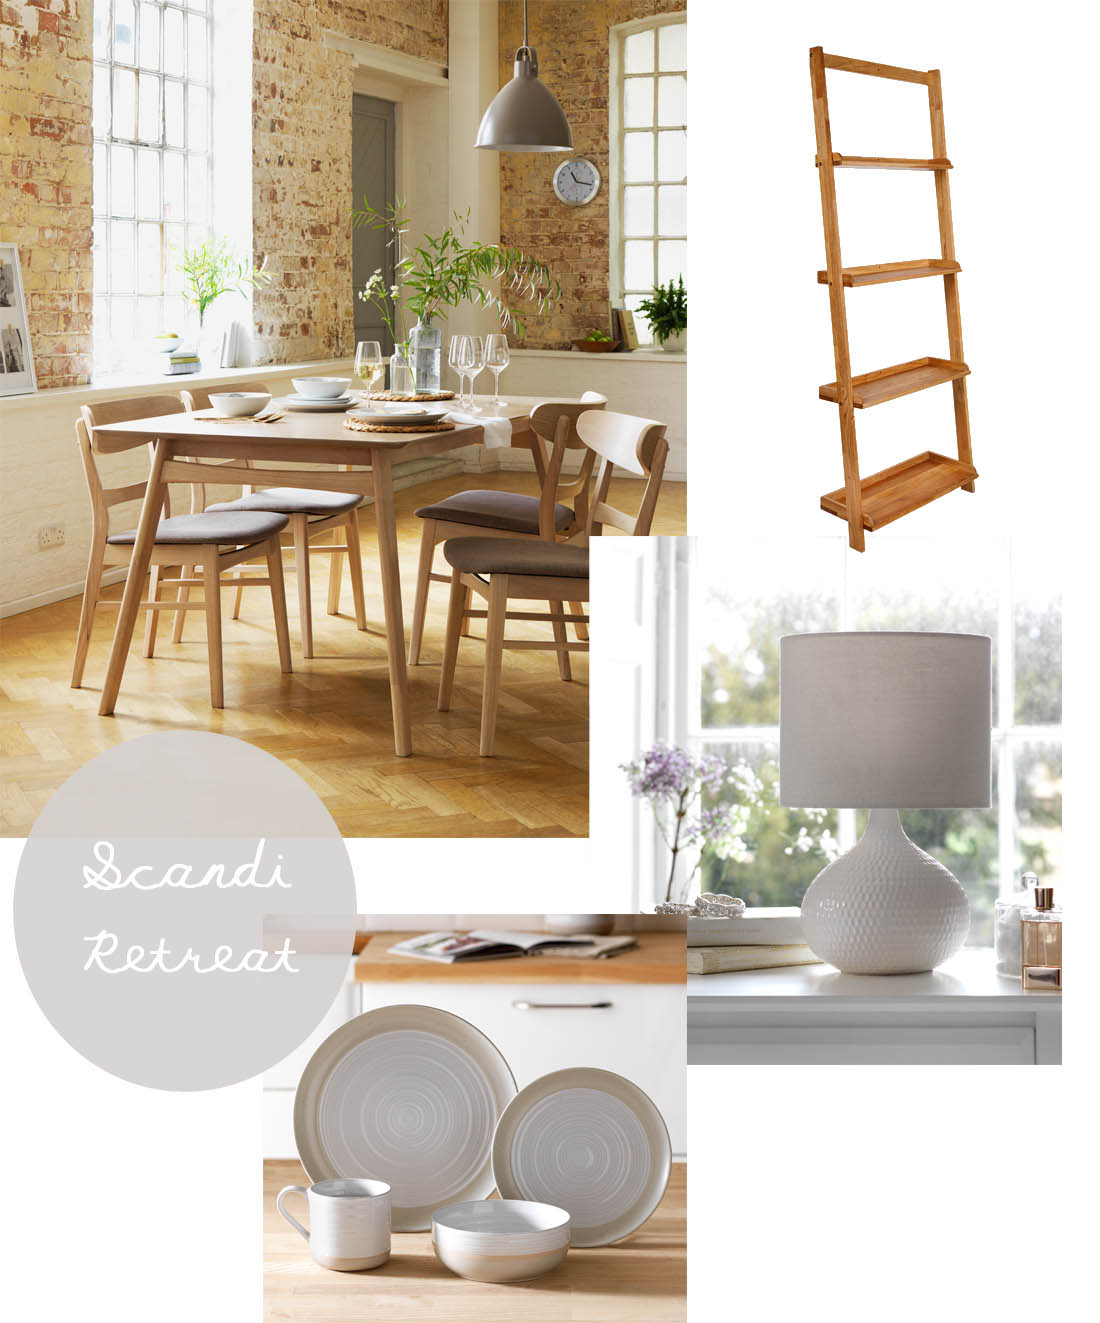 scandi retreat